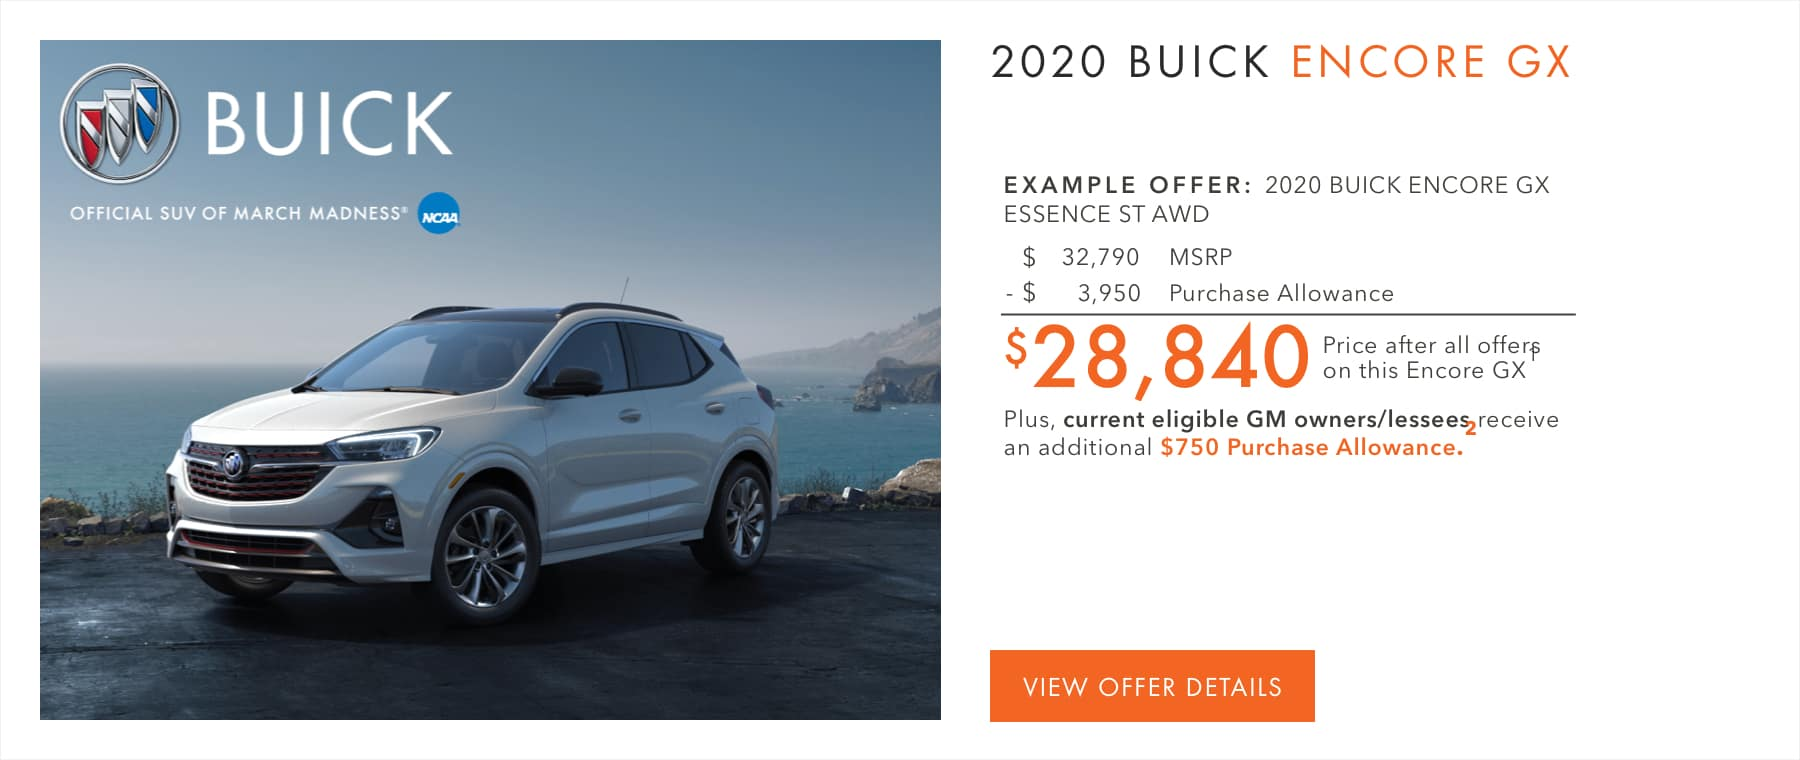 $3,950 Purchase Allowance.1 Plus, current eligible Buick or GMC owners/lessees receive an additional $750 Purchase Allowance.2